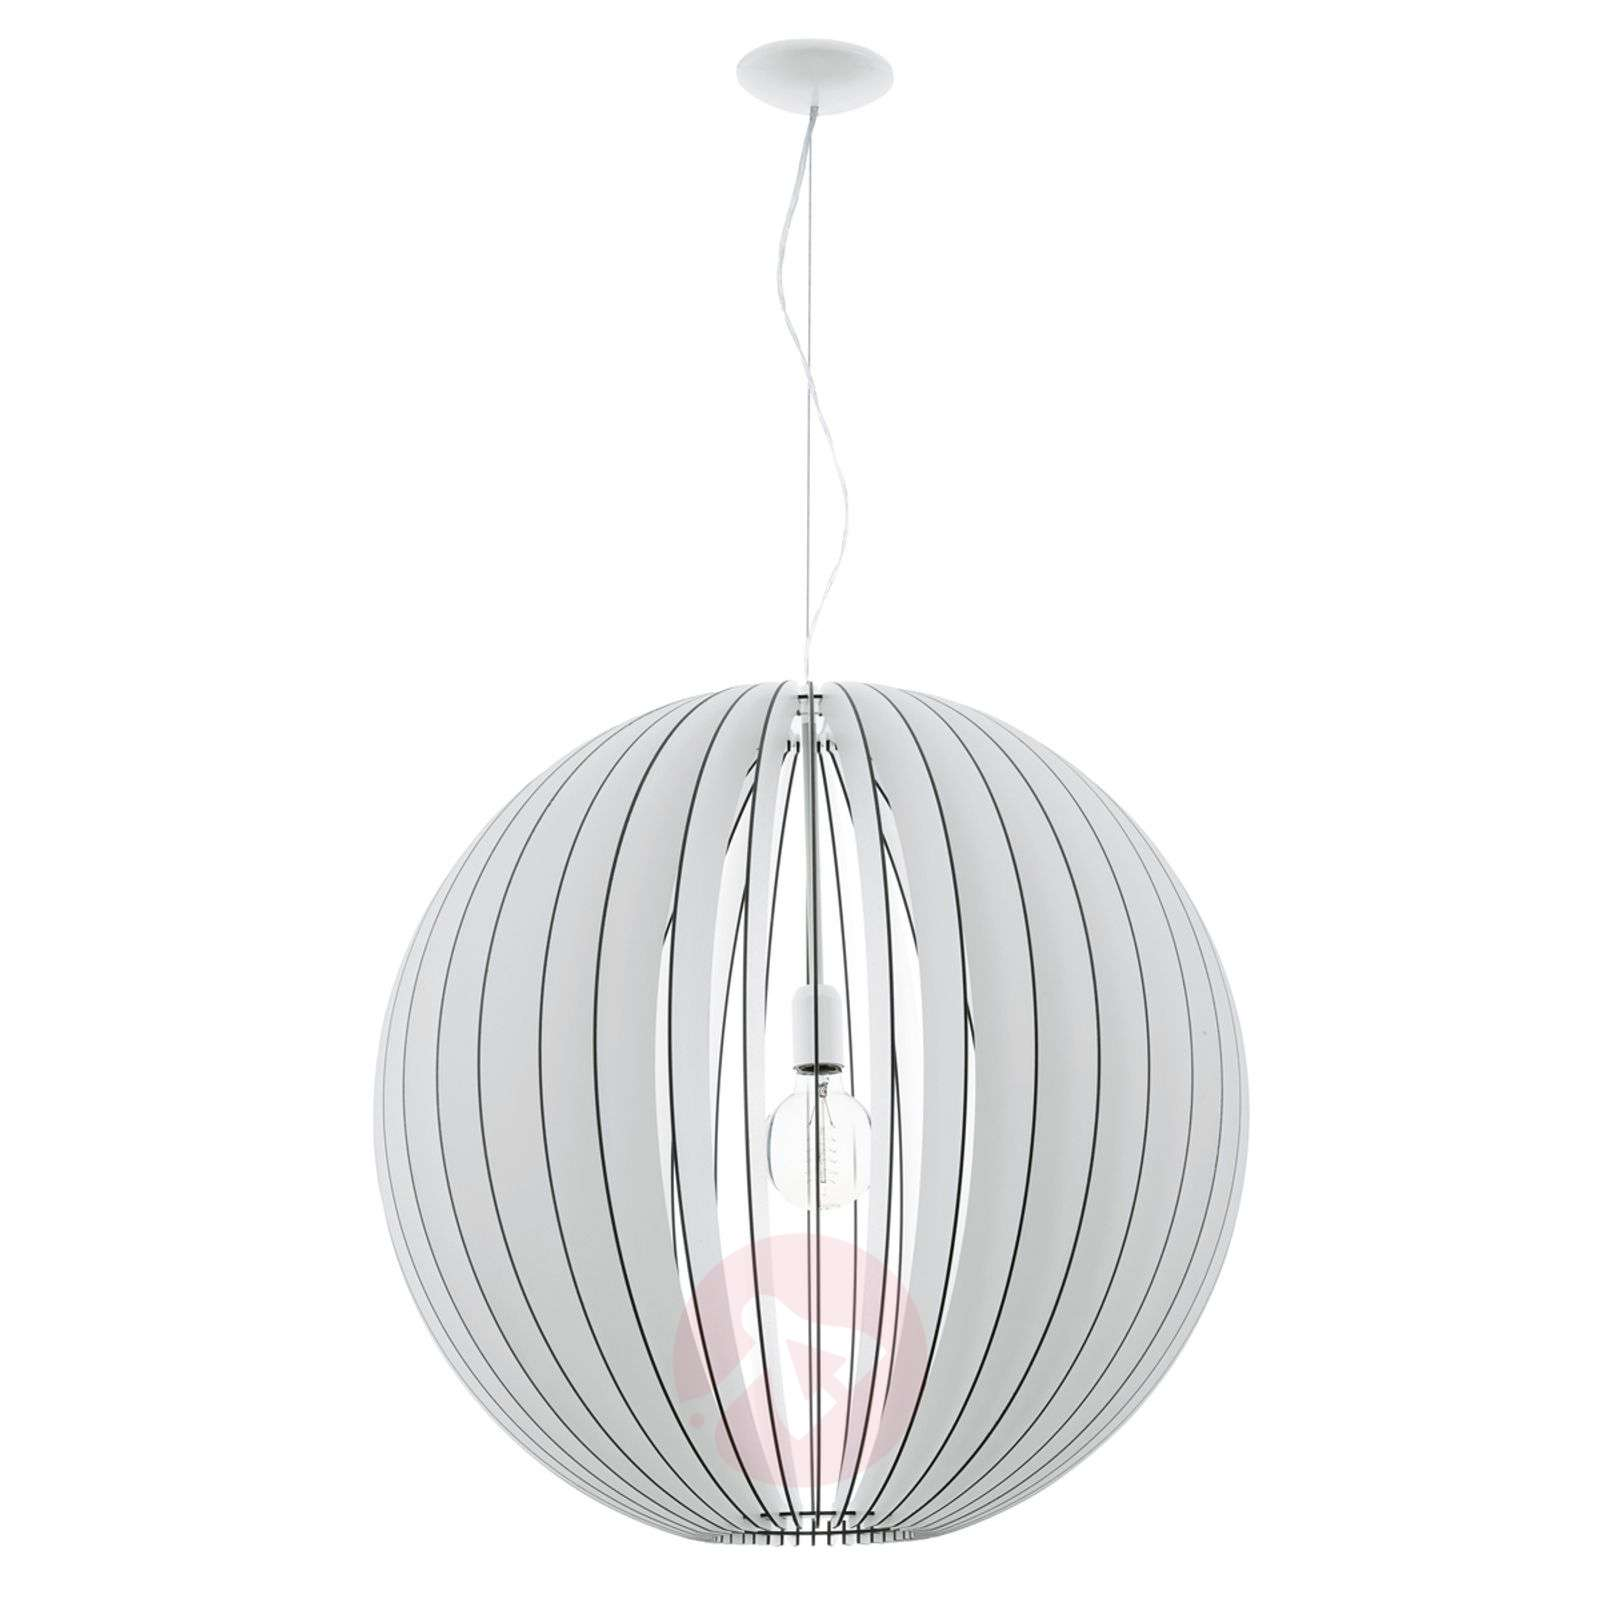 Imposing Cossano hanging light with wooden slats-3031826-01